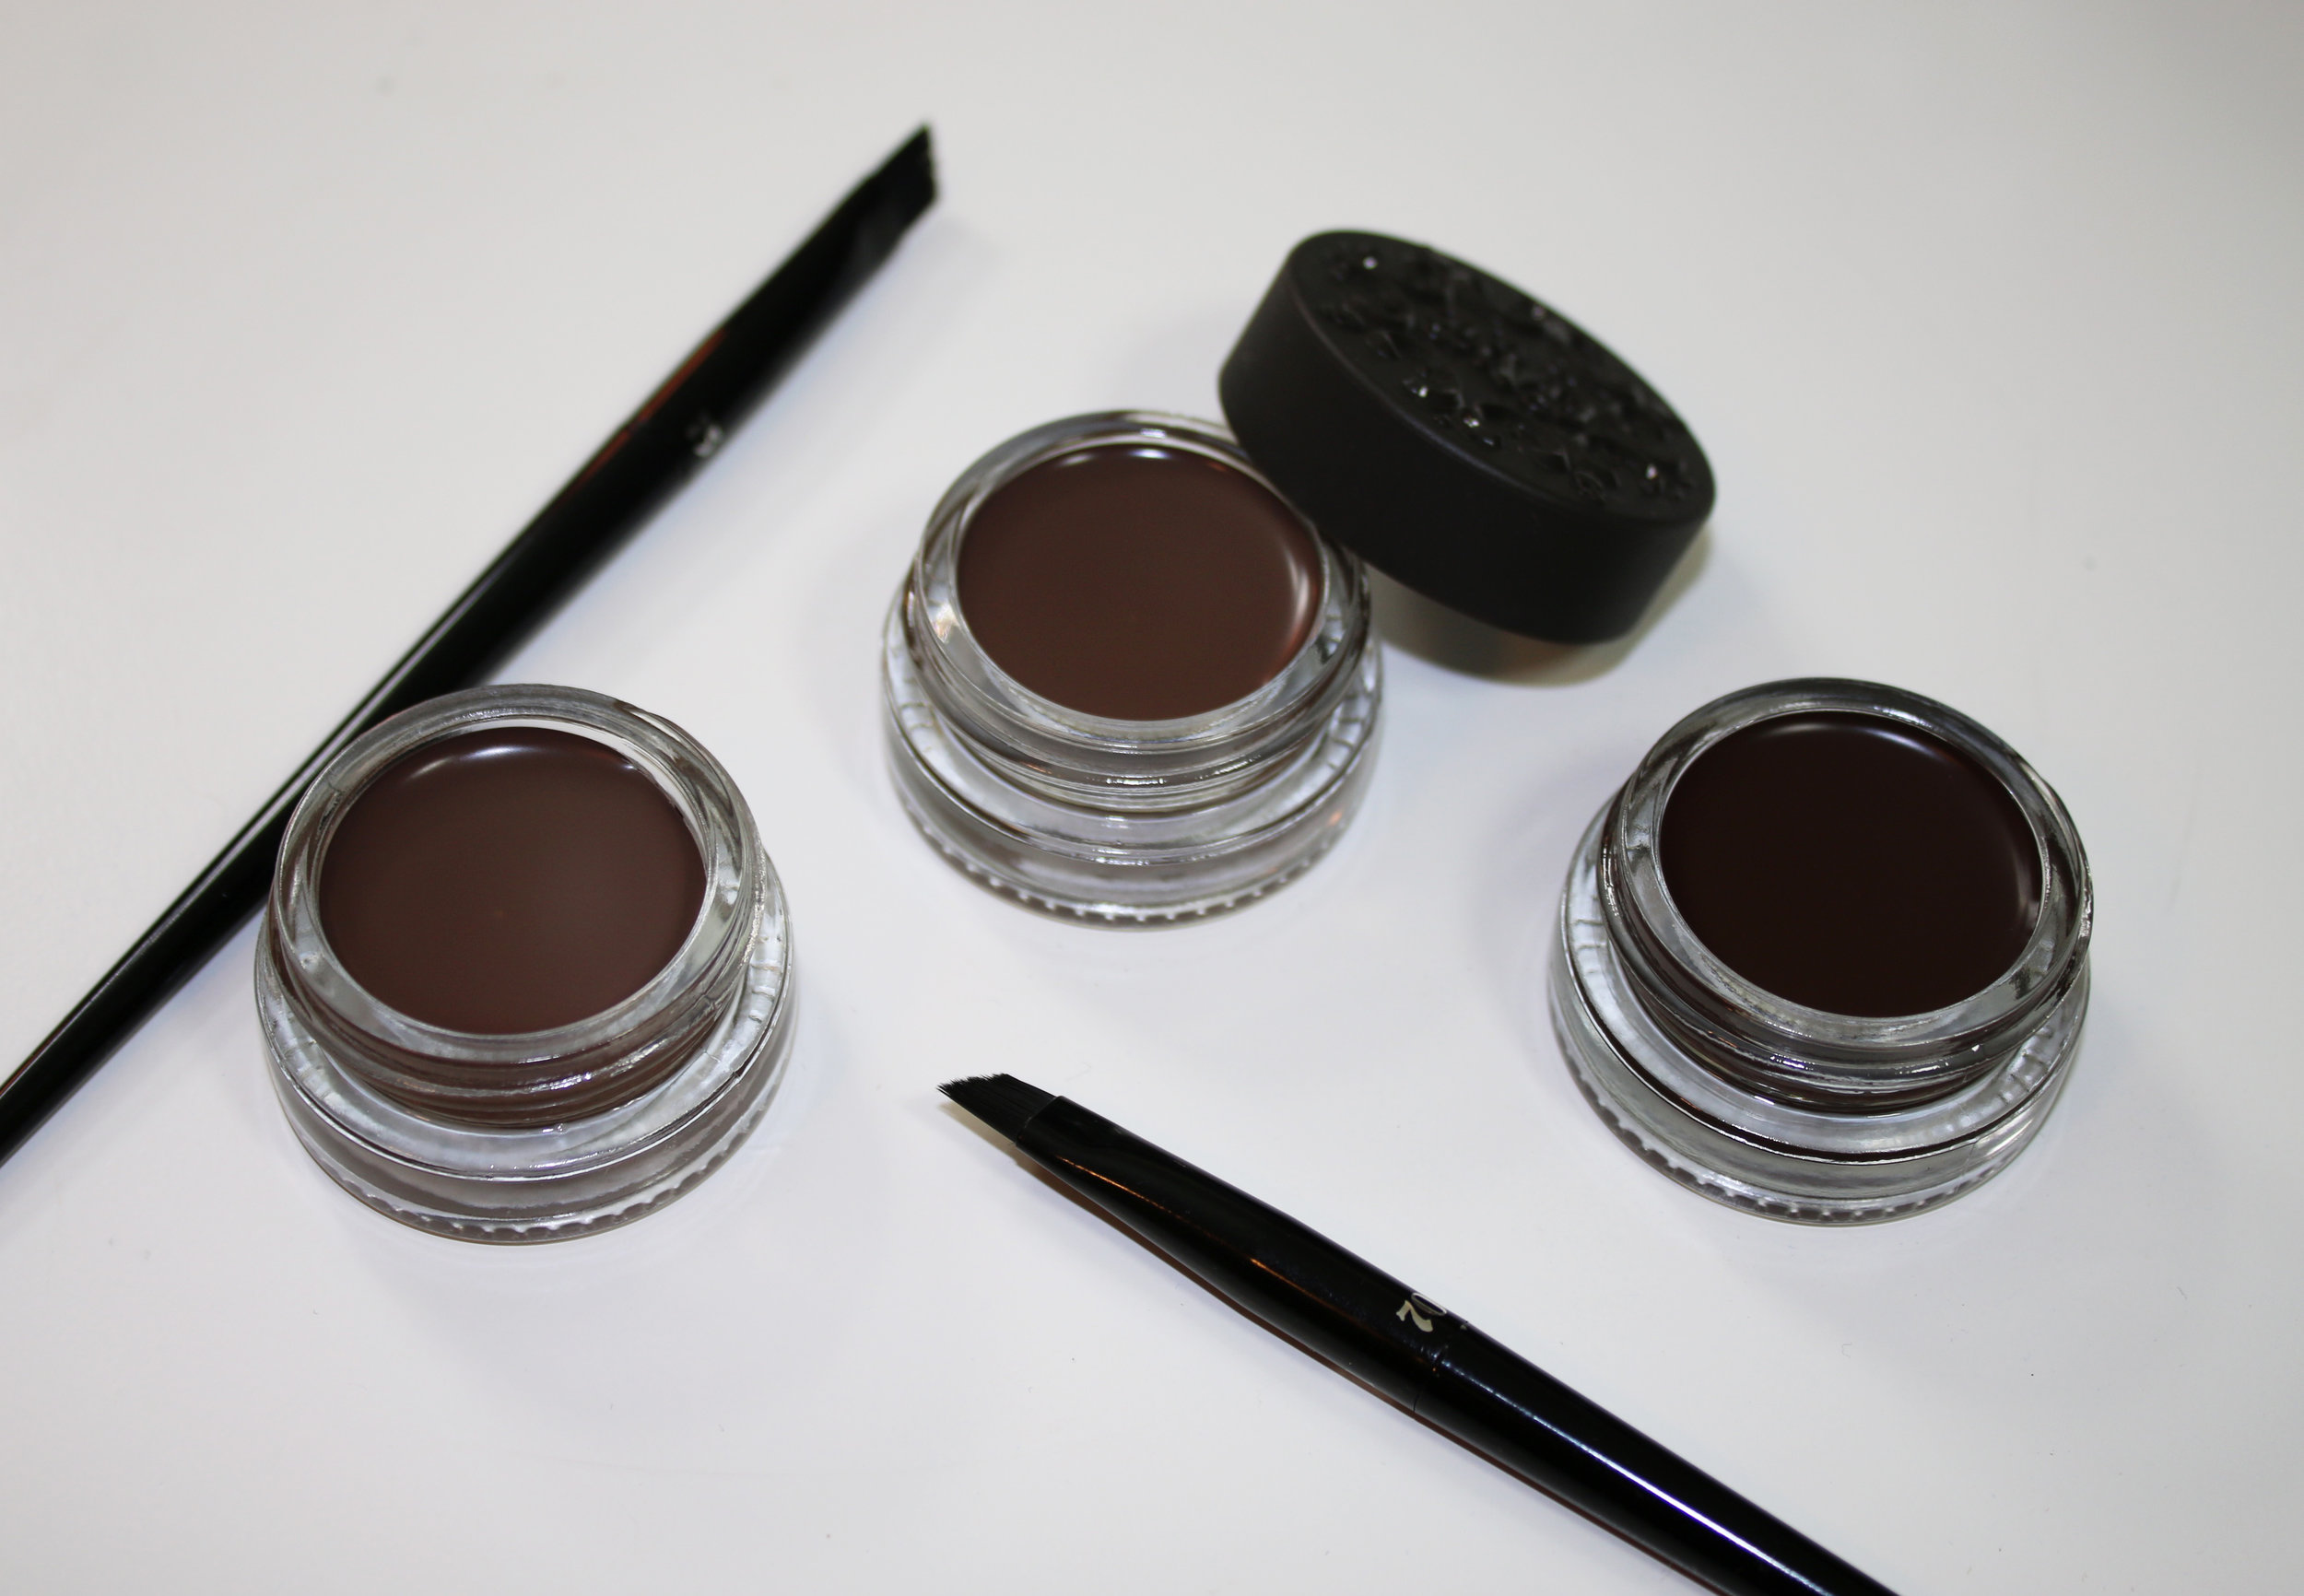 Kat Von D Beauty 24-Hour Super Brow Long-Wear Pomade Candy Coated Closets.jpg